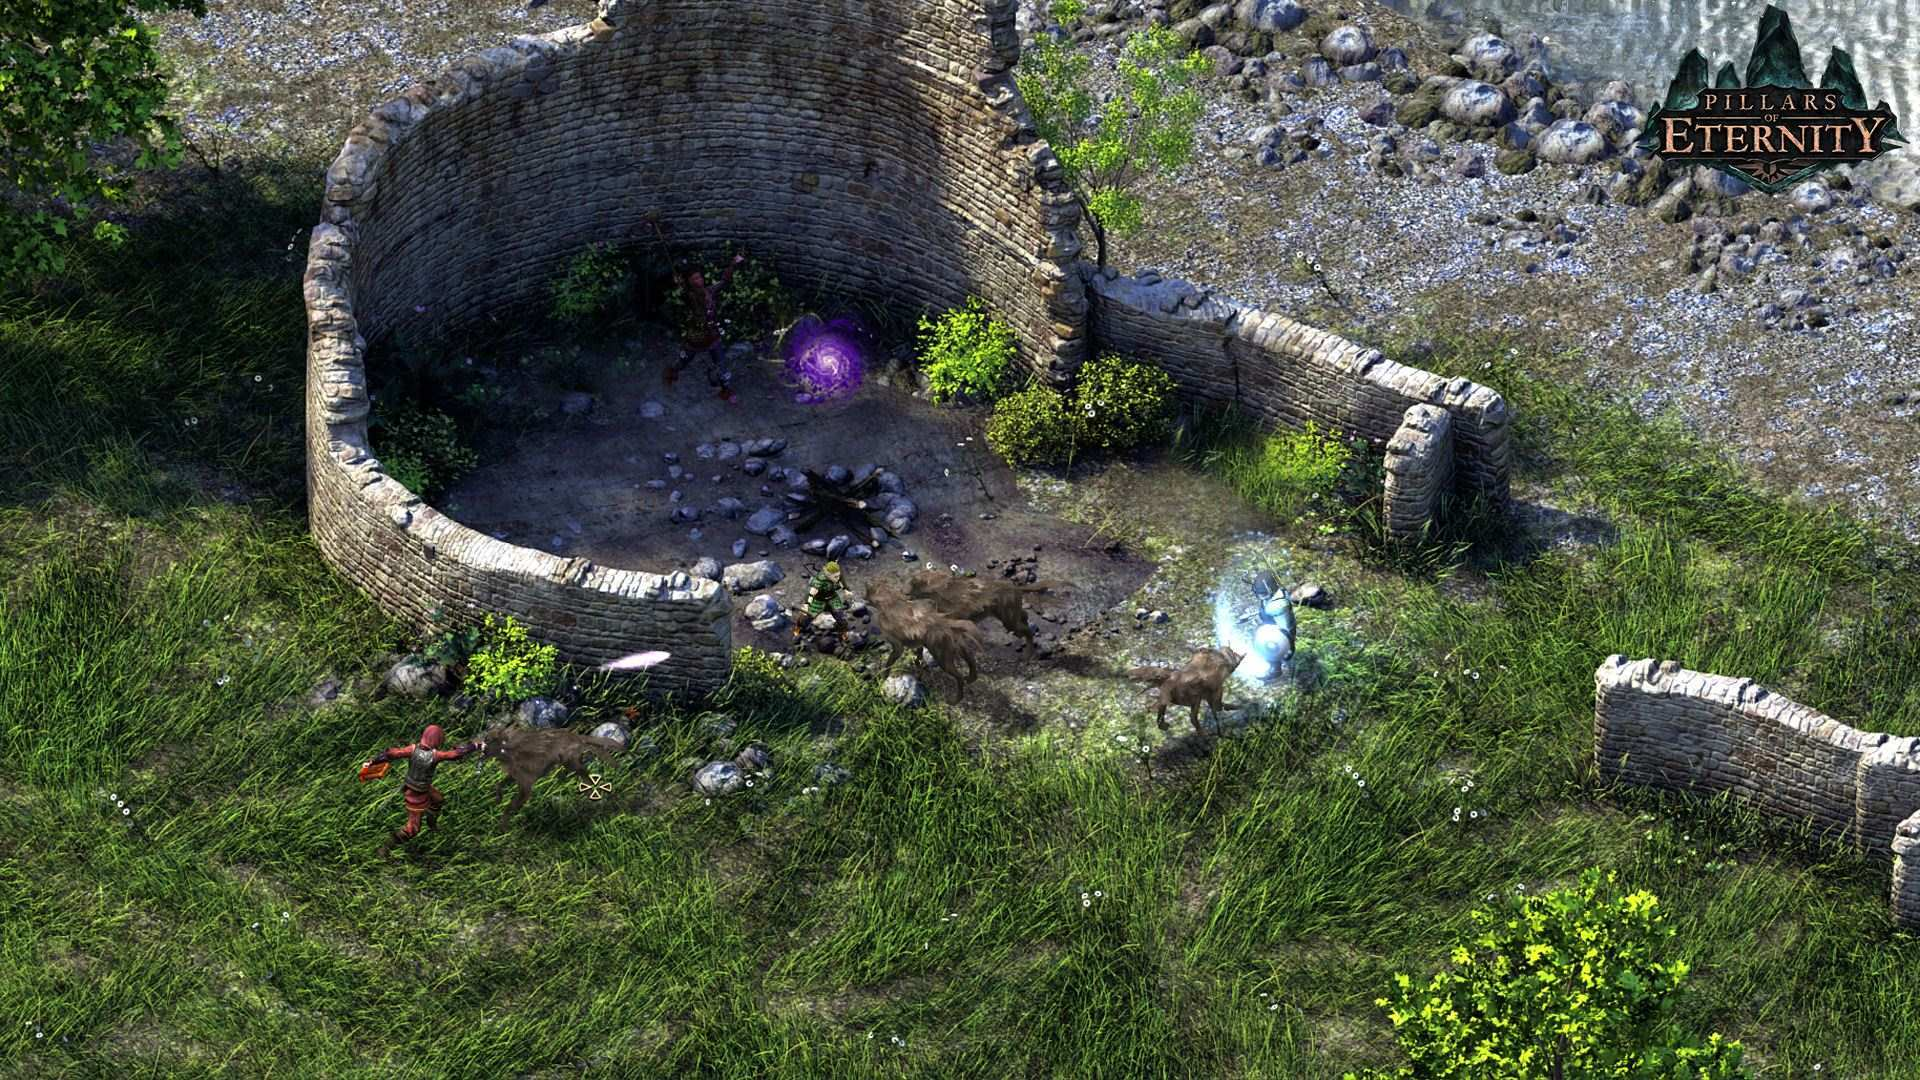 Pillars Of Eternity [v 1.0.2.0508] | PC | RePack от R.G. Механики